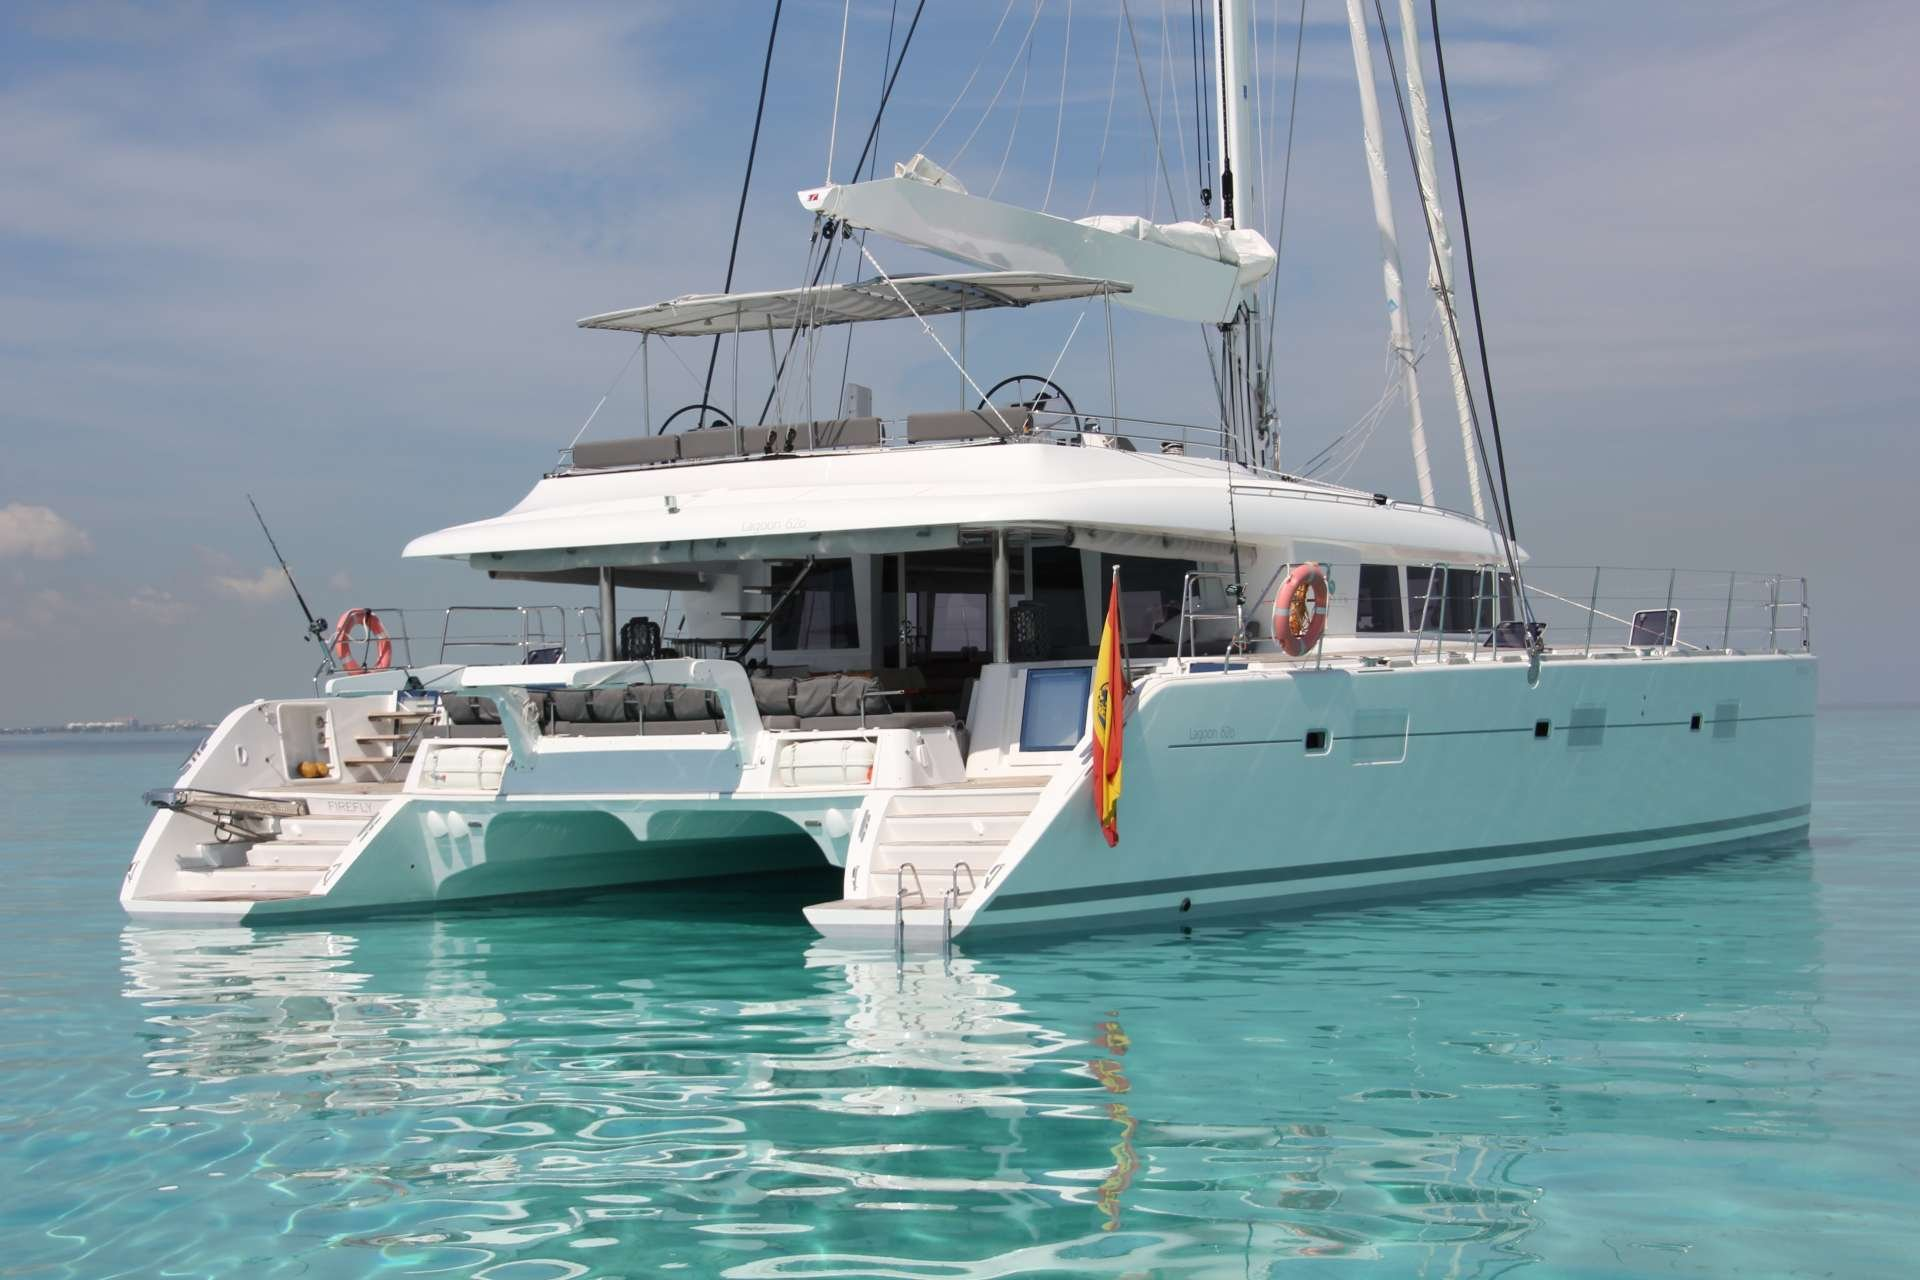 Catamaran Yacht 'FIREFLY' At anchorage, 6 PAX, 3 Crew, 61.00 Ft, 18.00 Meters, Built 2011, Lagoon